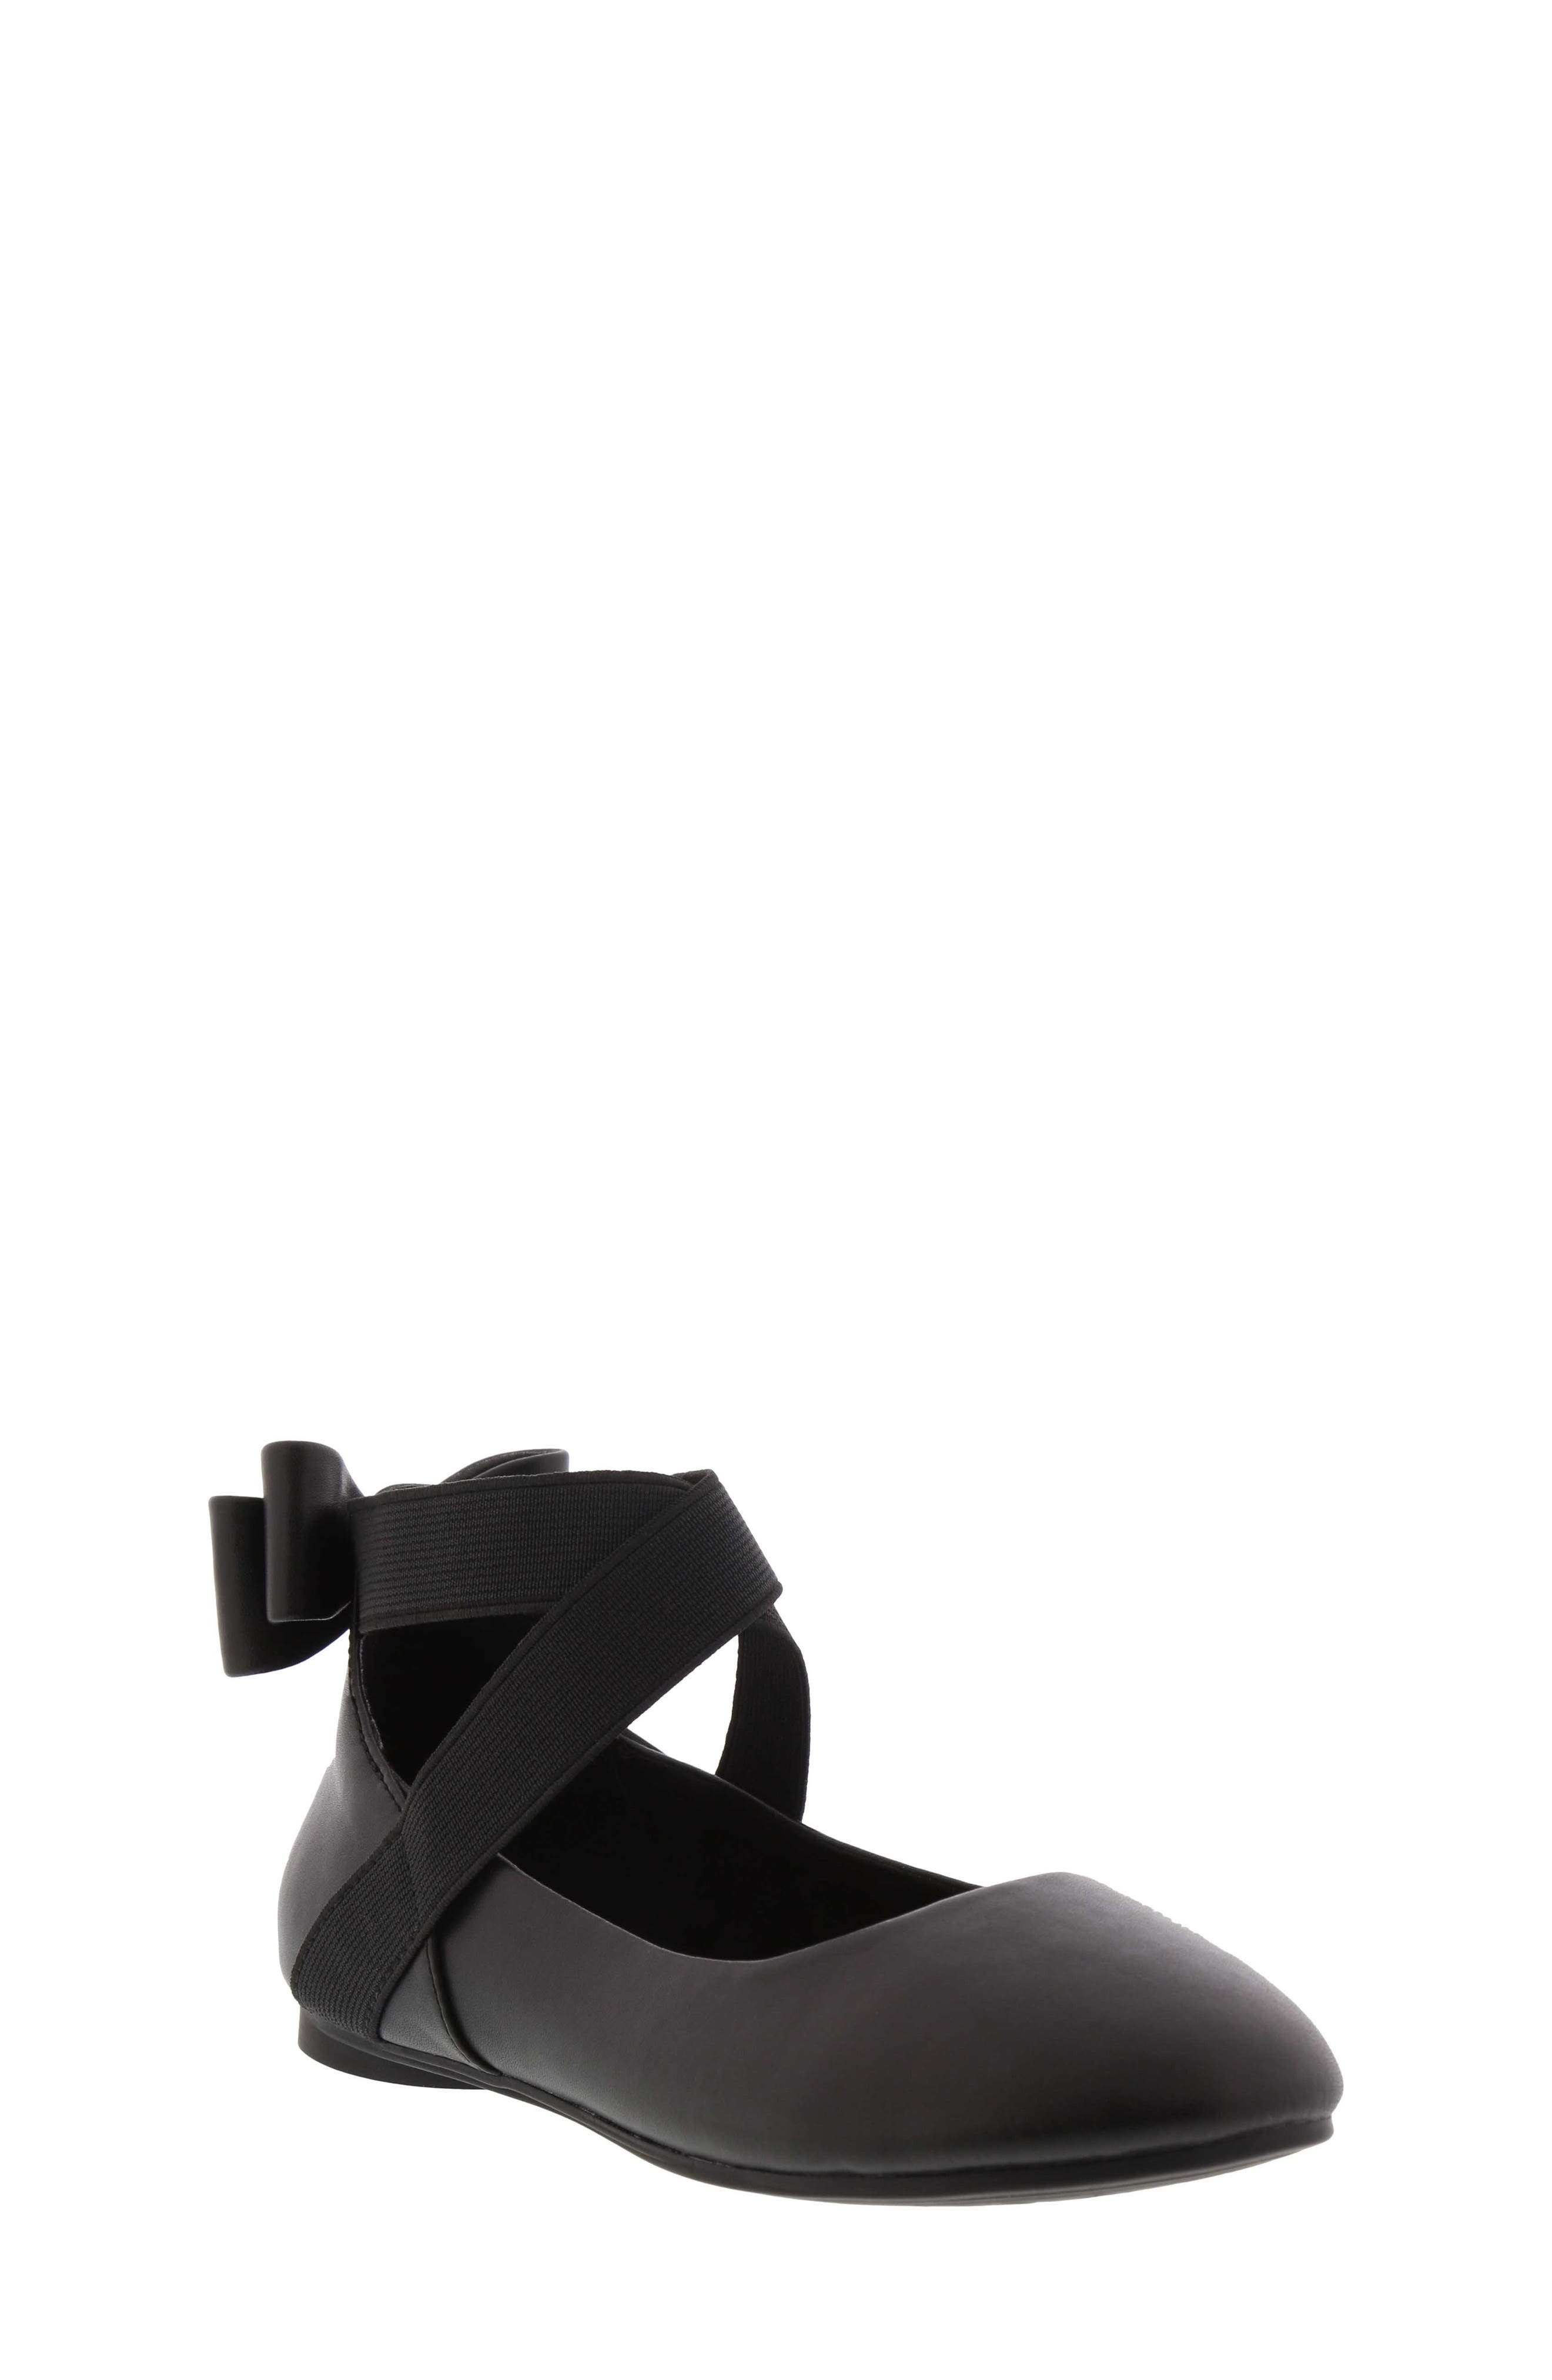 KENNETH COLE NEW YORK Strappy Ballet Flat, Main, color, 001